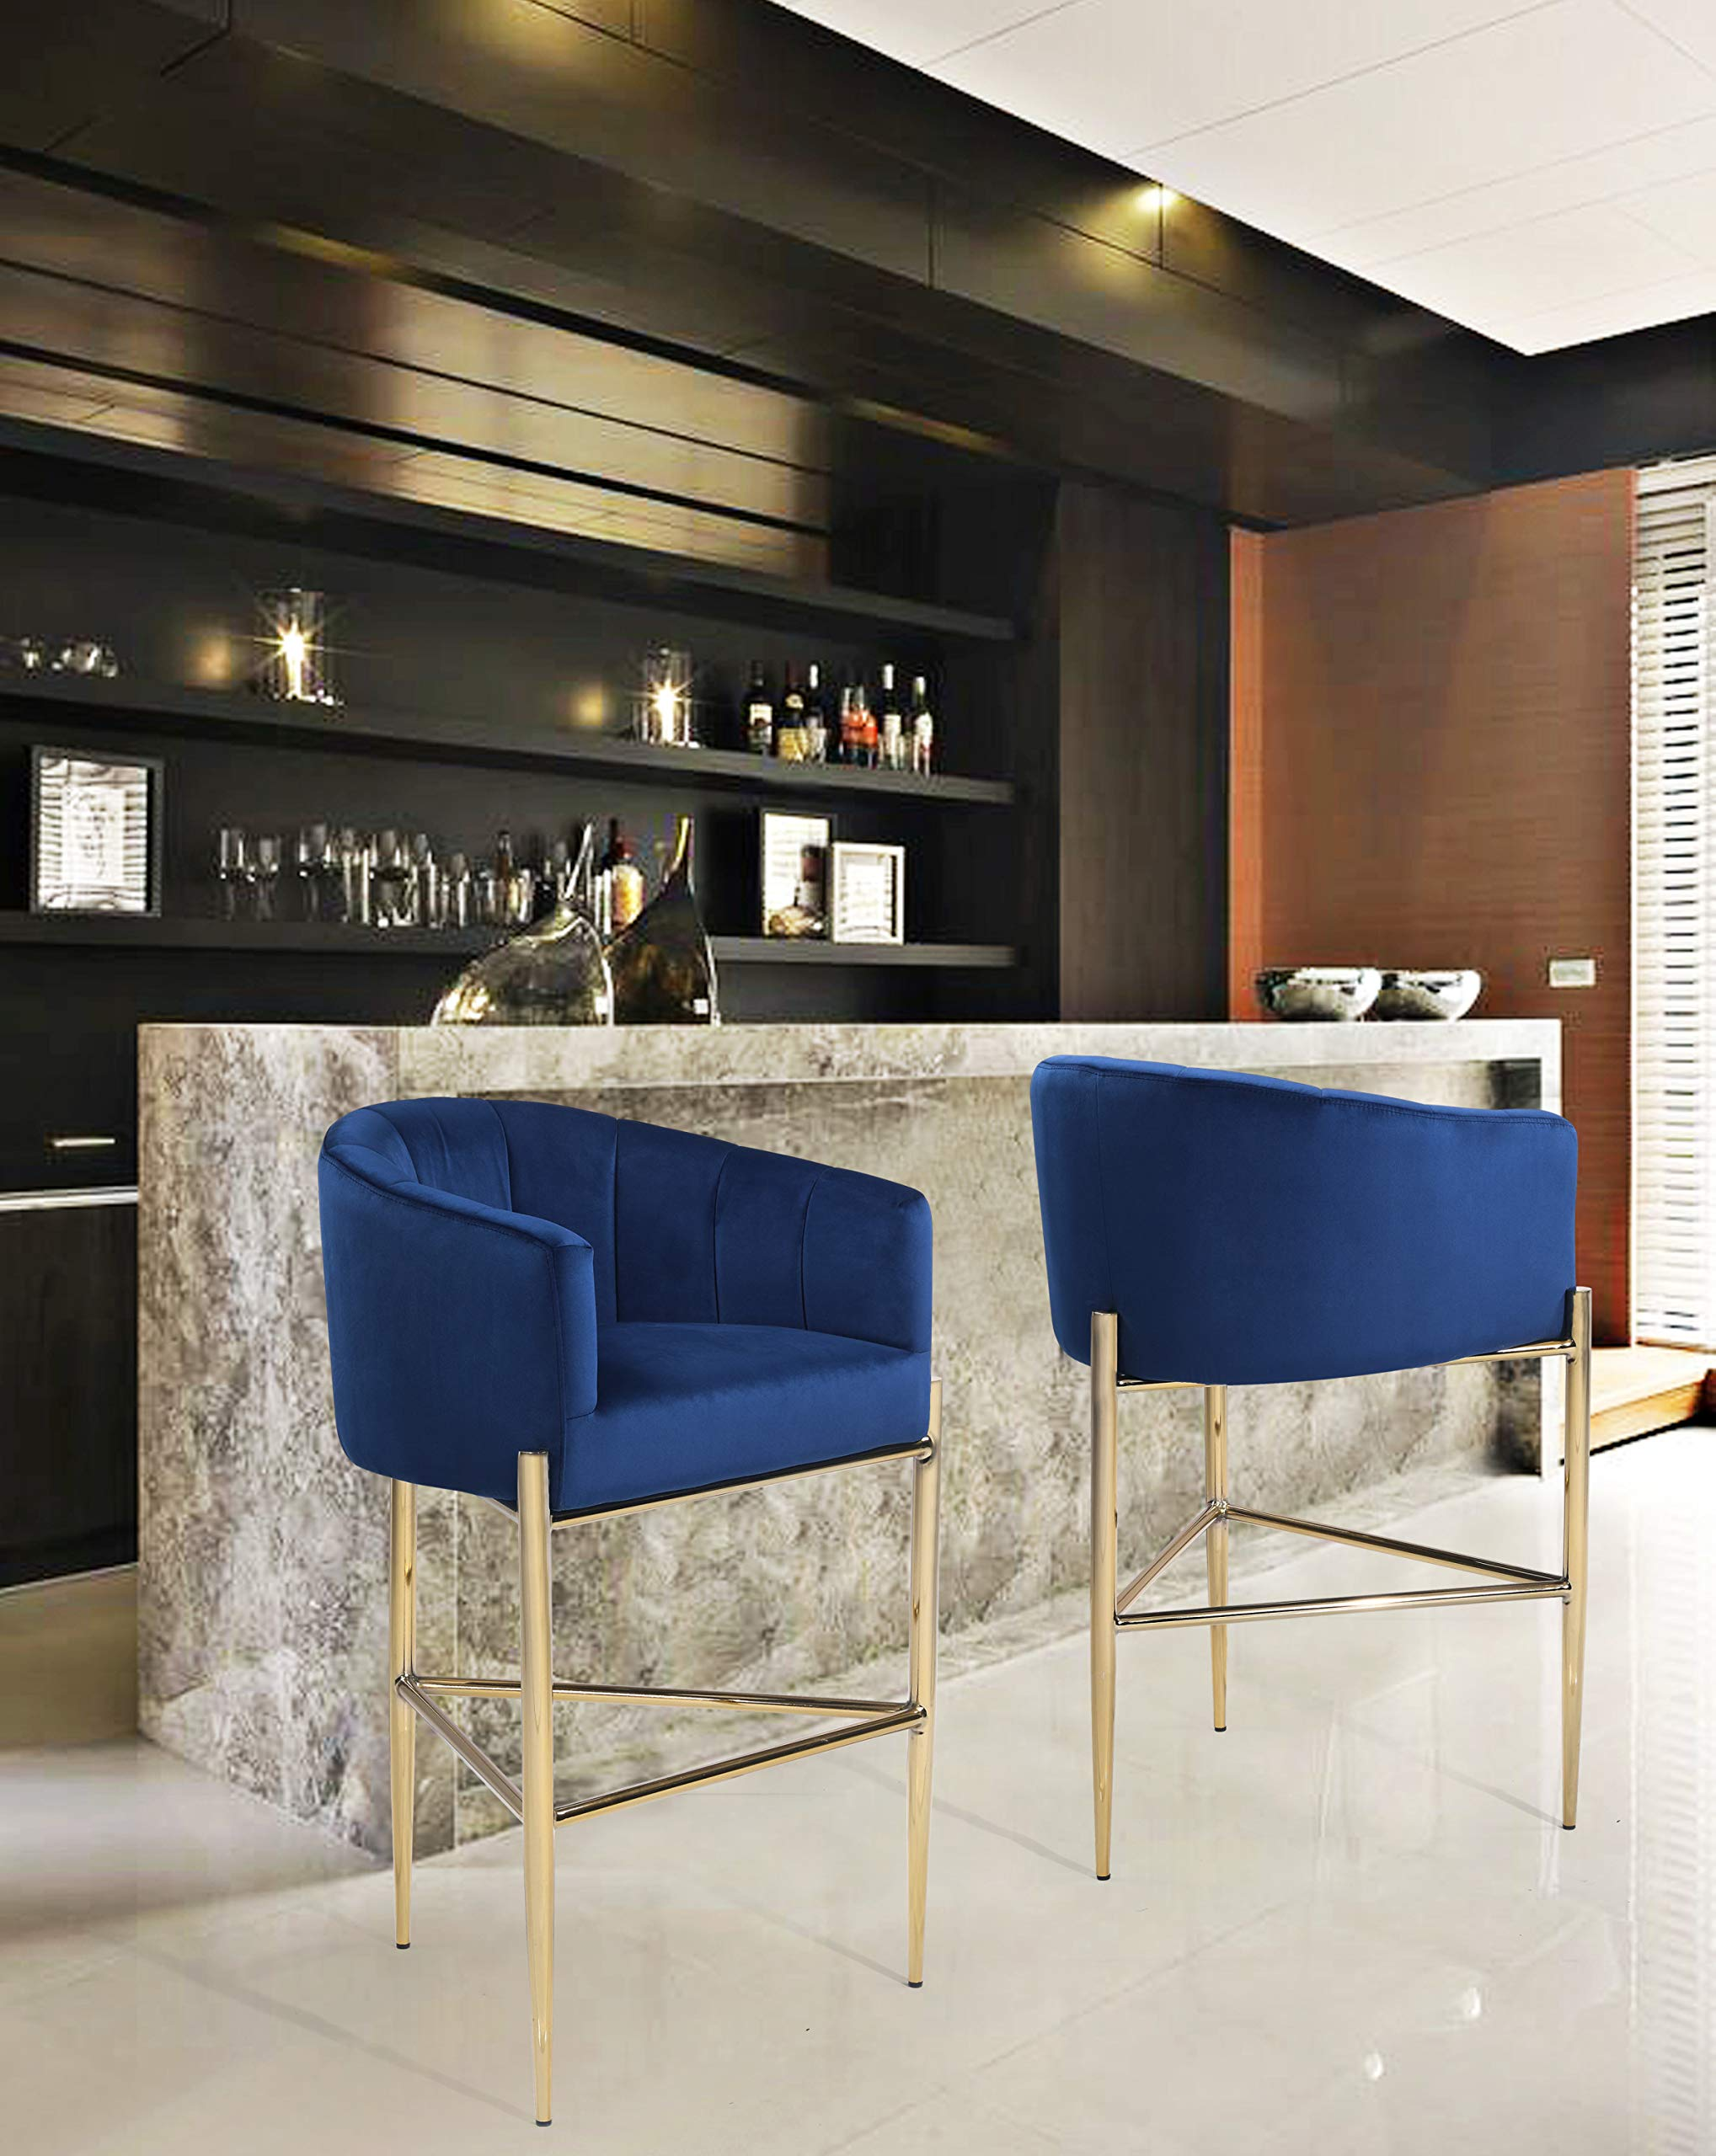 Iconic Home FBS9483-AN Cyrene Bar Stool Chair Velvet Upholstered Shelter Arm Shell Design 3 Legged Gold Tone Solid Metal Base Modern Contemporary, Navy by Iconic Home